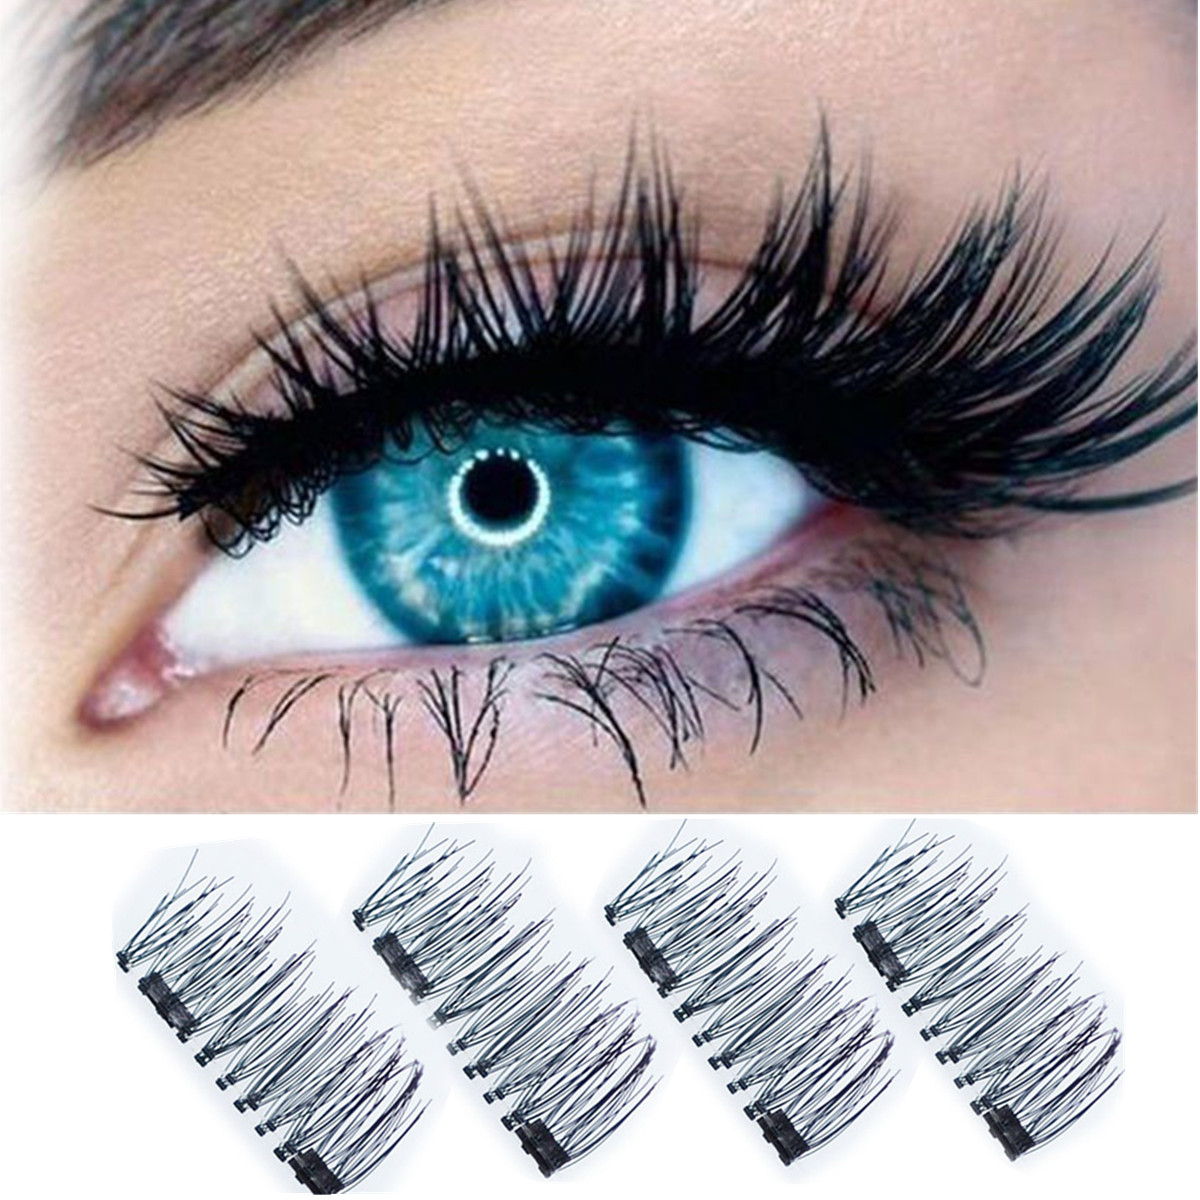 4PCS/2 Pairs 3D Double Magnetic False Eyelashes Reusable Magnet Eye lashes Extension, no glue needed